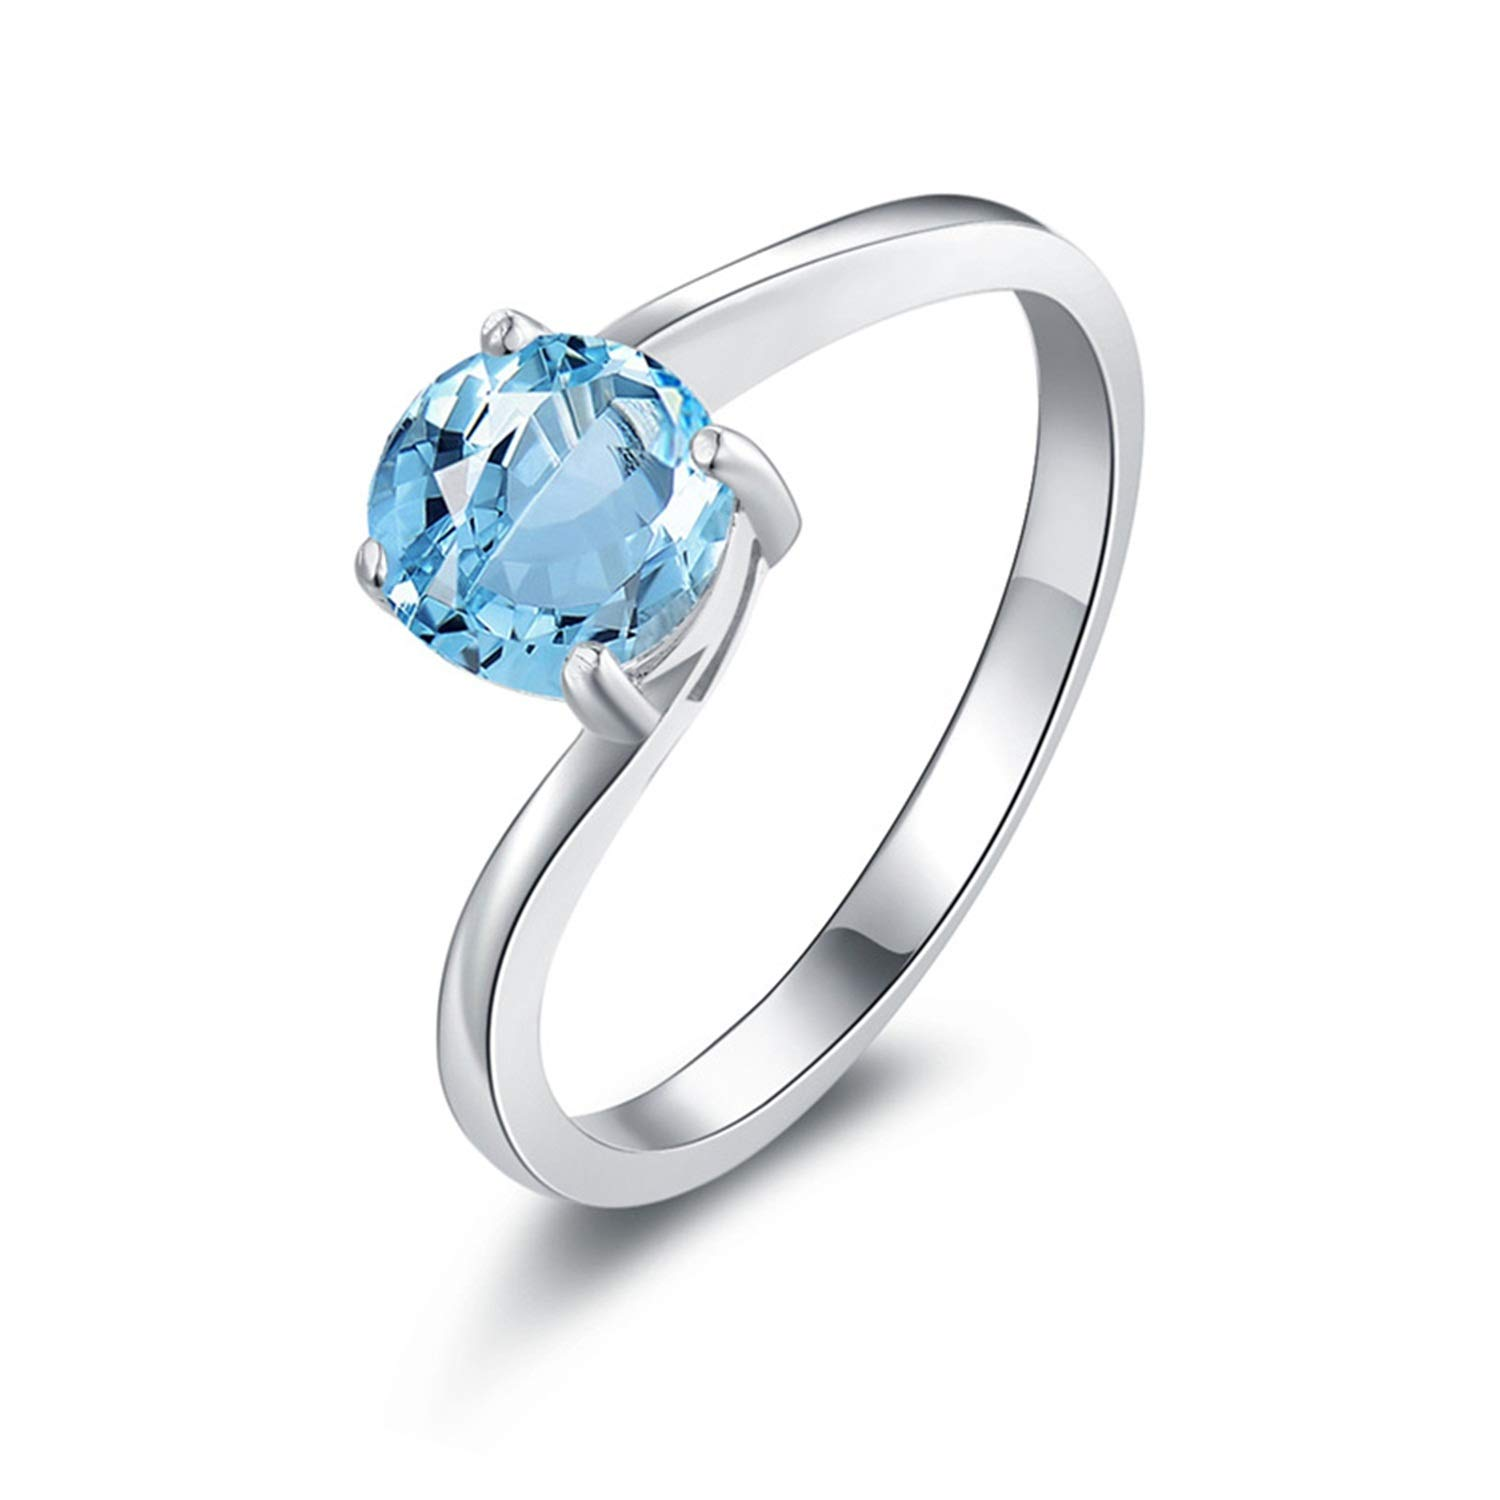 AMDXD 925 Silver Engagement Ring for Women Round Cut Topaz Round Rings